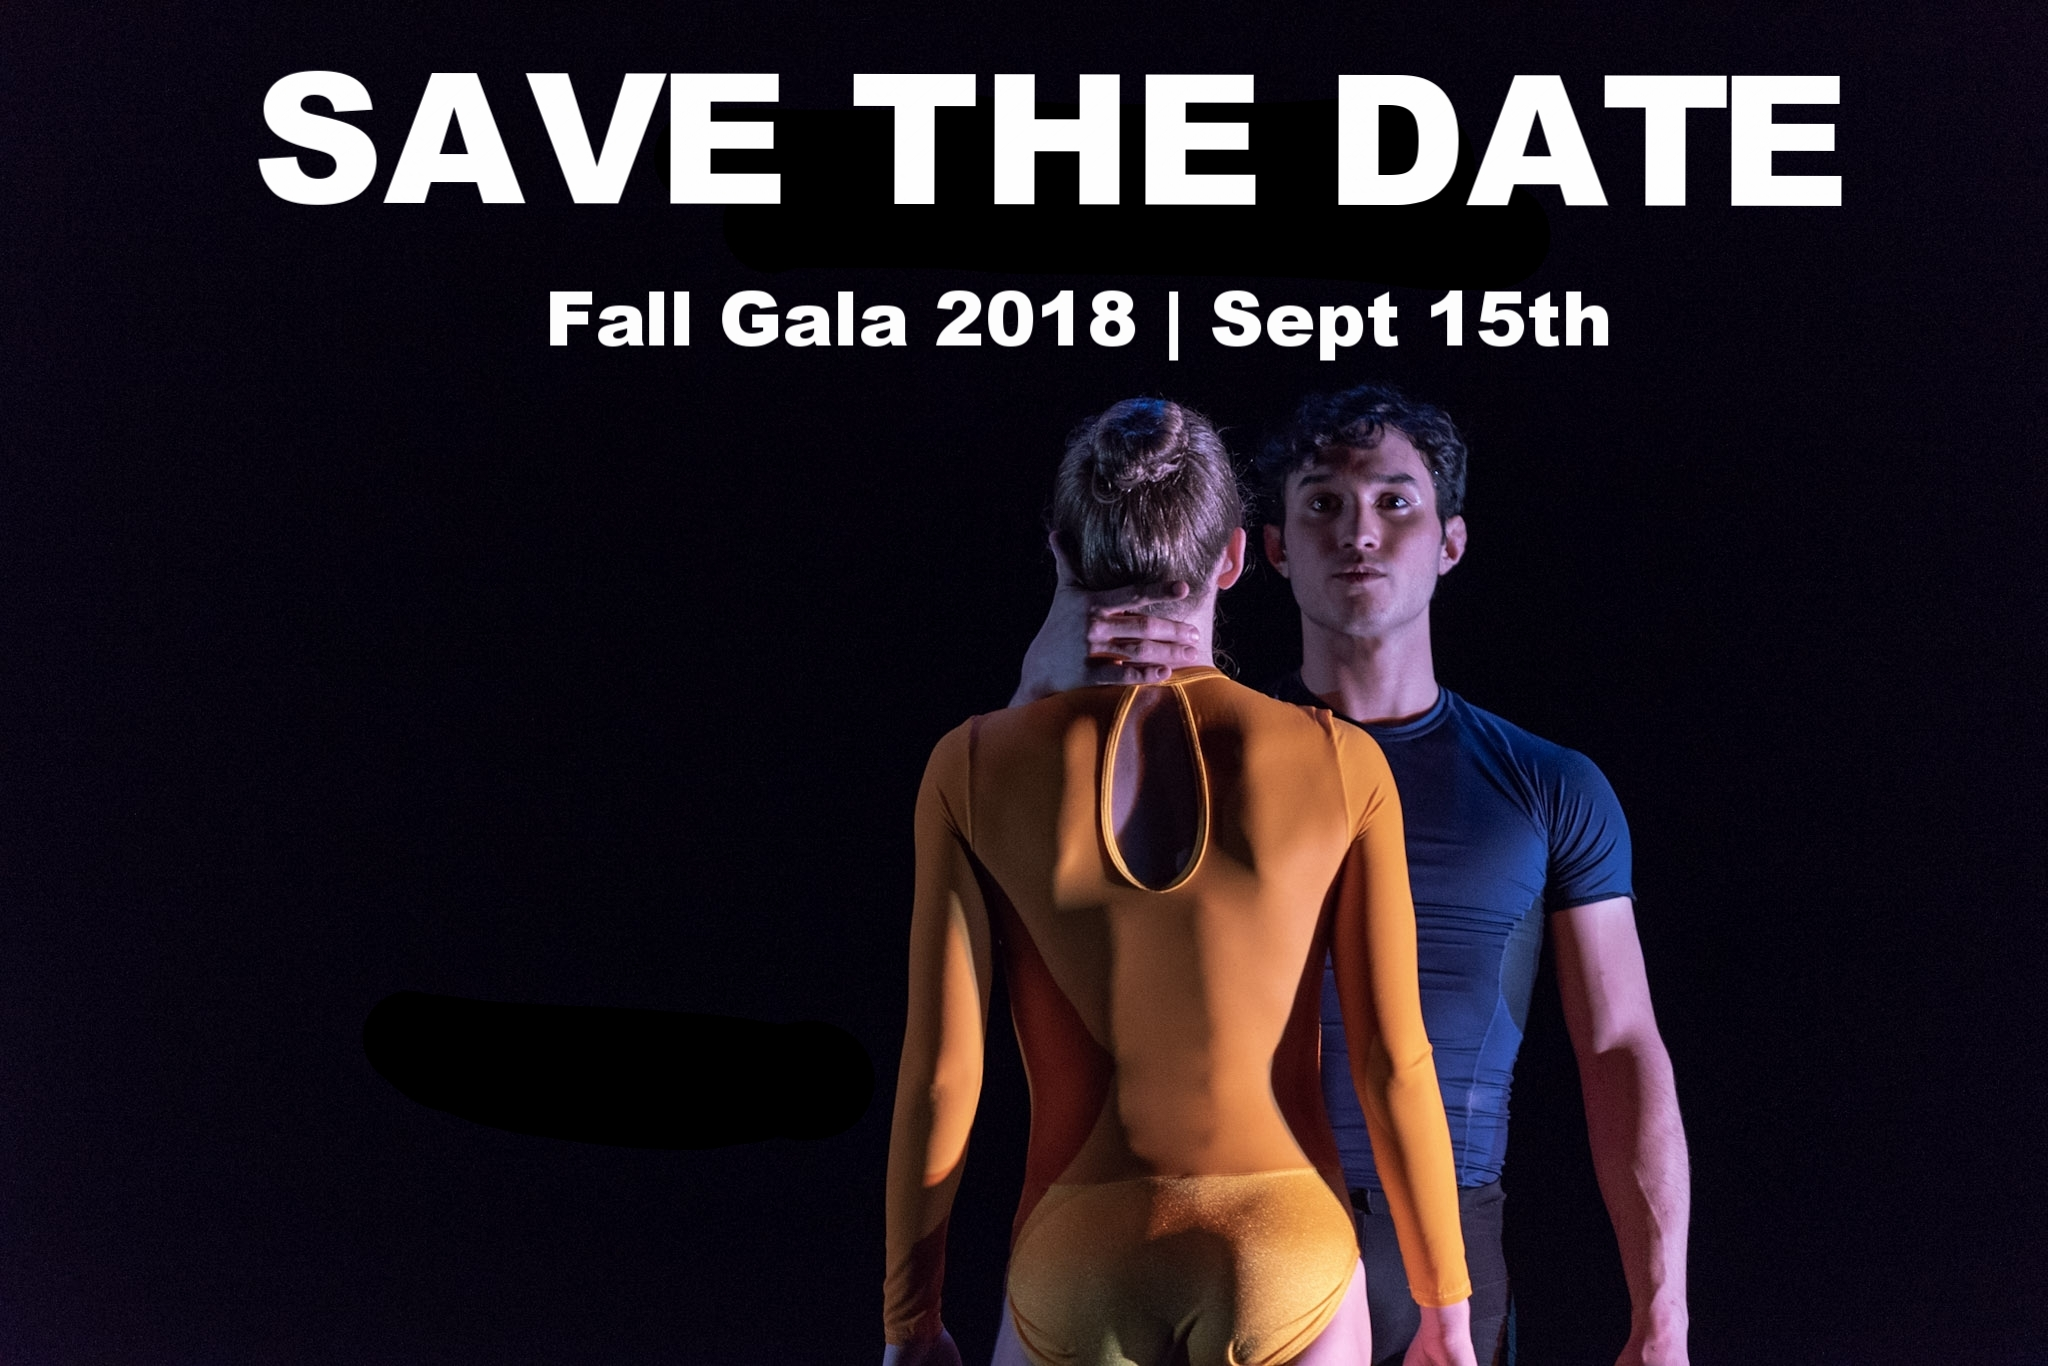 Save the date!   CRB'S fall gala ENVISION is September 15th. Save the date for a fun evening of dance, drink and FUN all in support of Chicago's contemporary ballet company. Make sure to put September 15 on your calendar. Don't miss the CRB event of the fall!